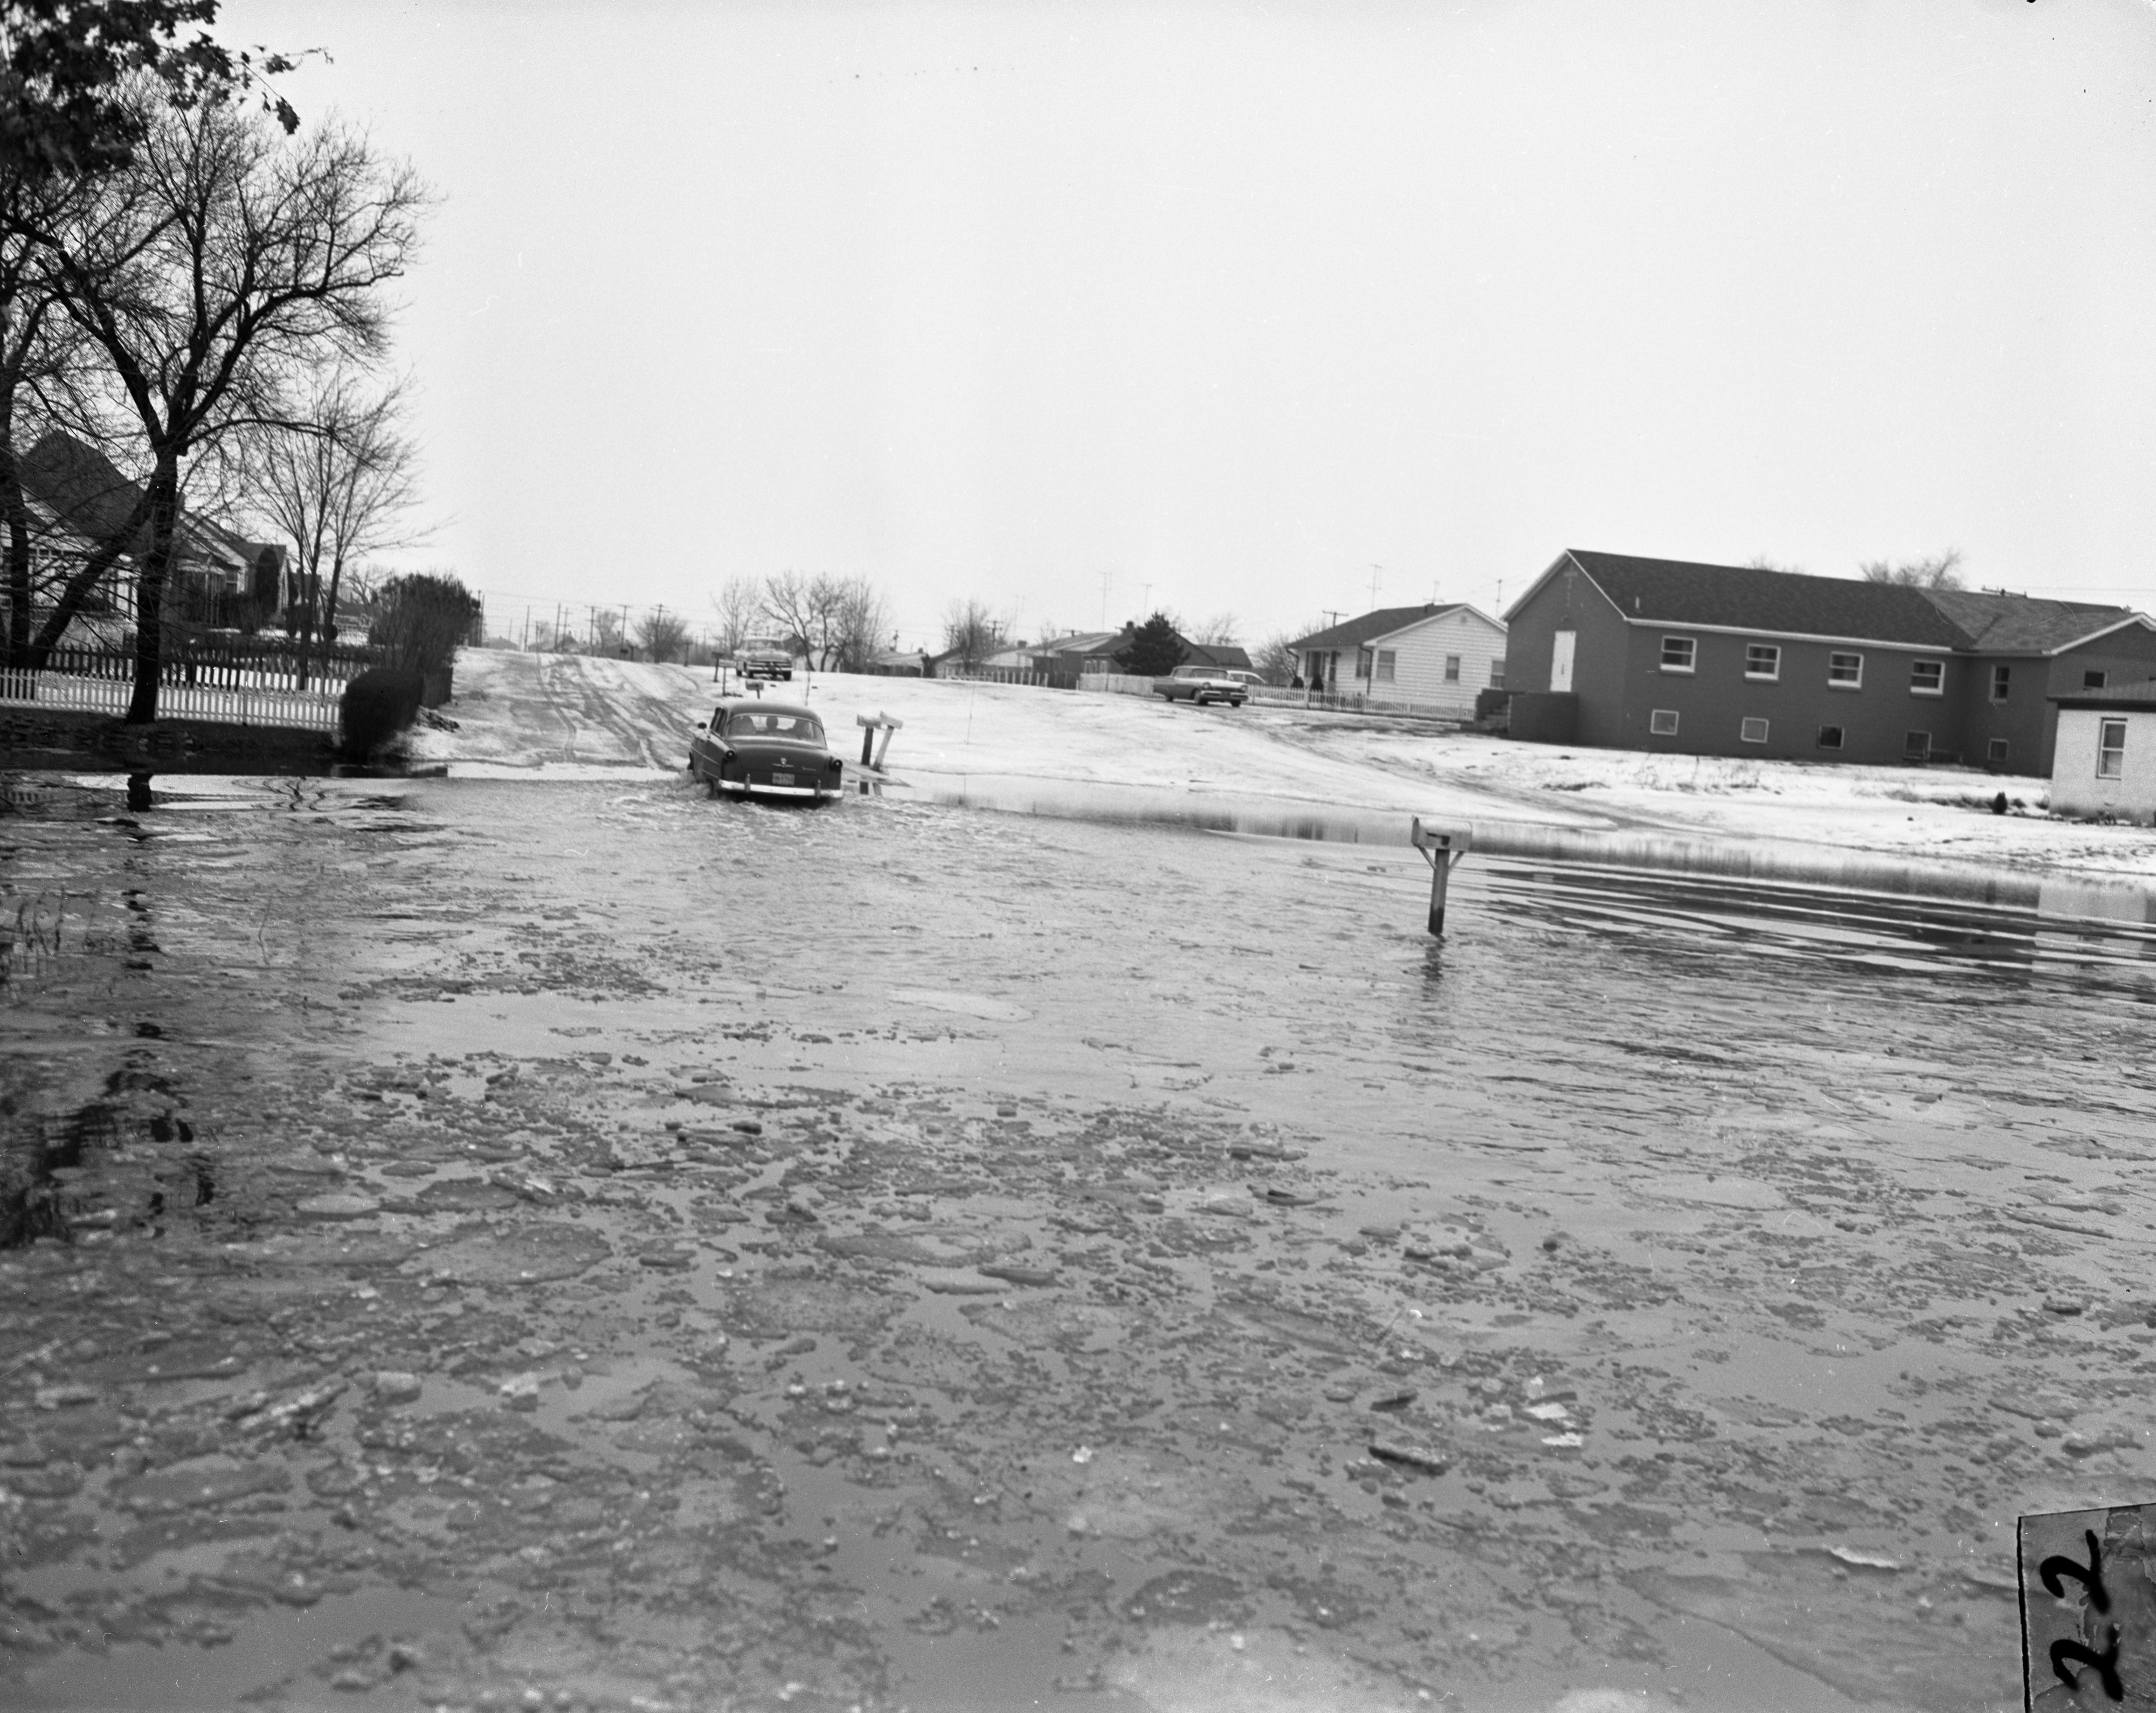 Flood at Willow Run Village, Forest Avenue and E. Grand Blvd., February 1959 image